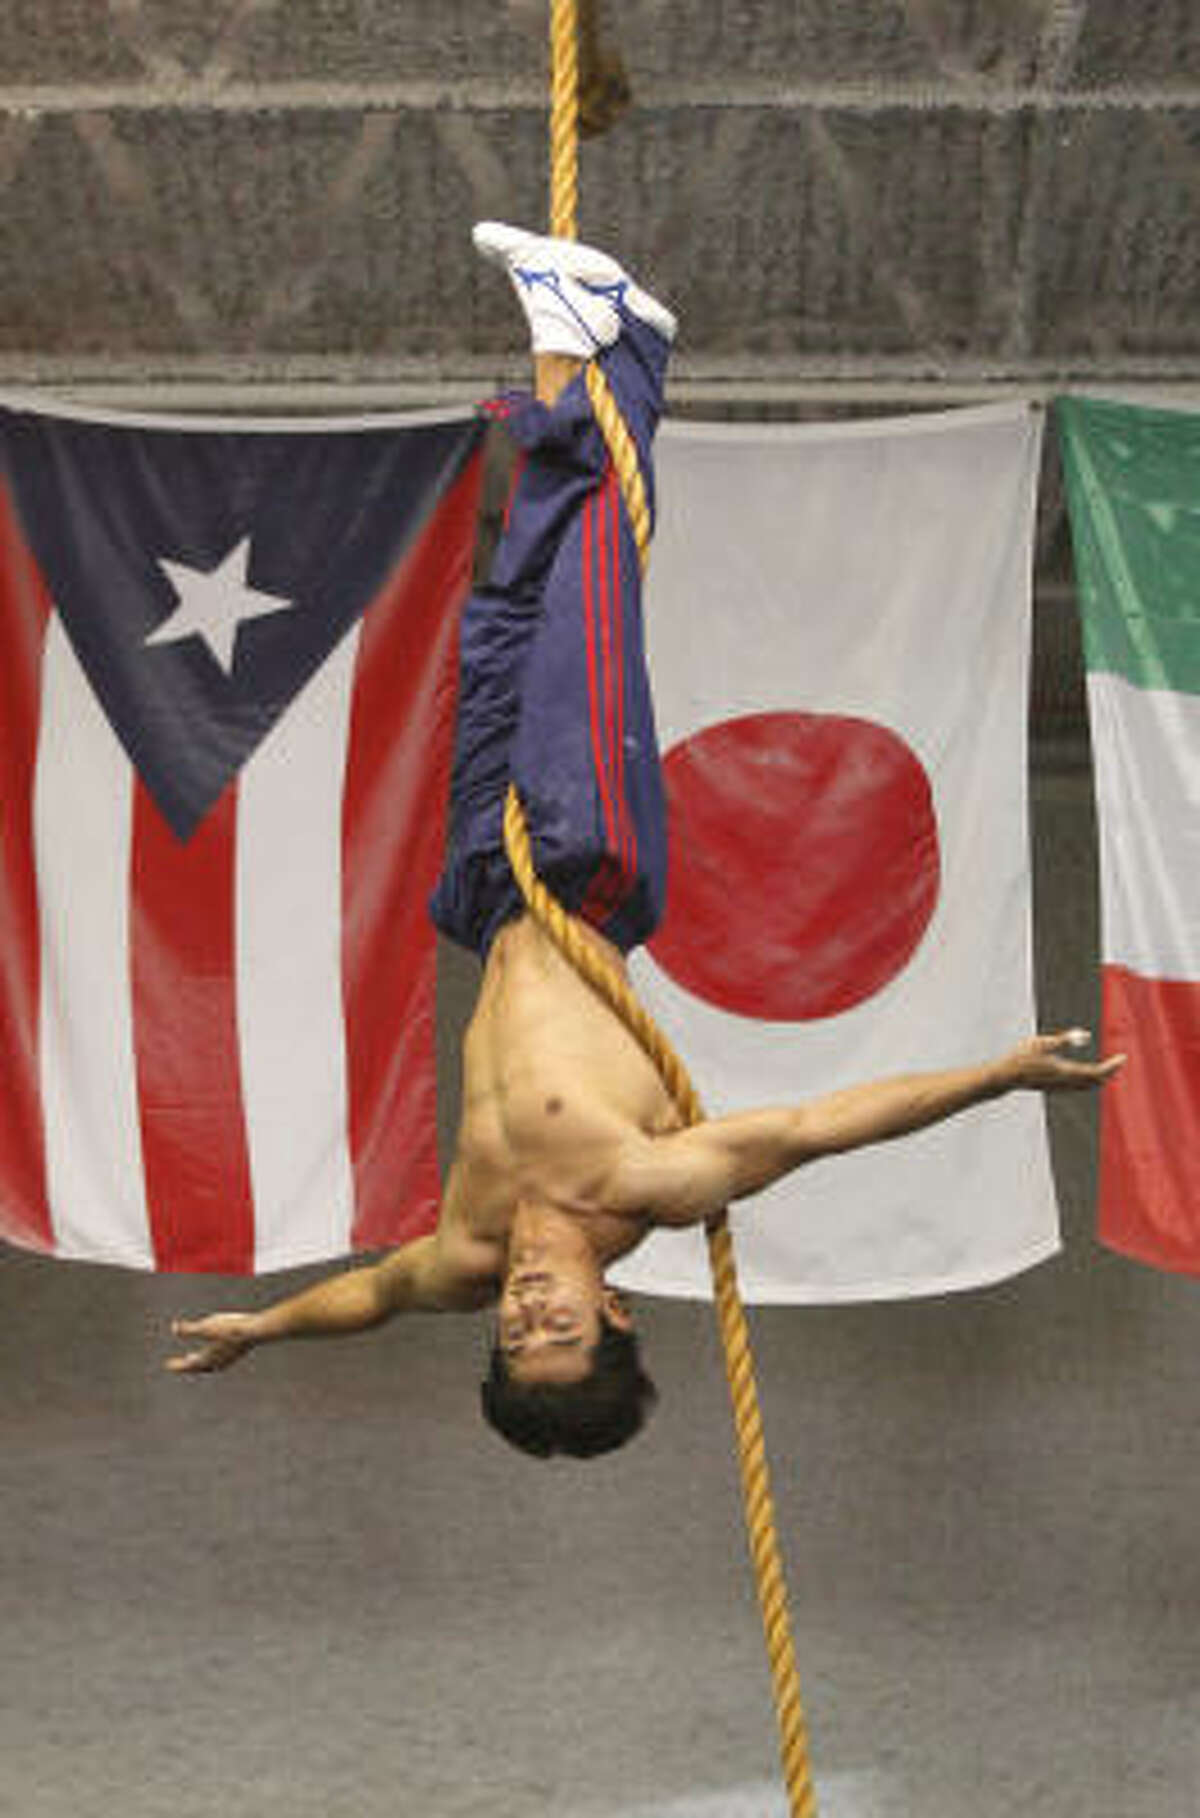 Raj Bhavsar works out at Houston Gymnastics Academy on Thursday in Houston. At 30, his career as a competitive gymnast has run its course, but a new one is on the horizon.